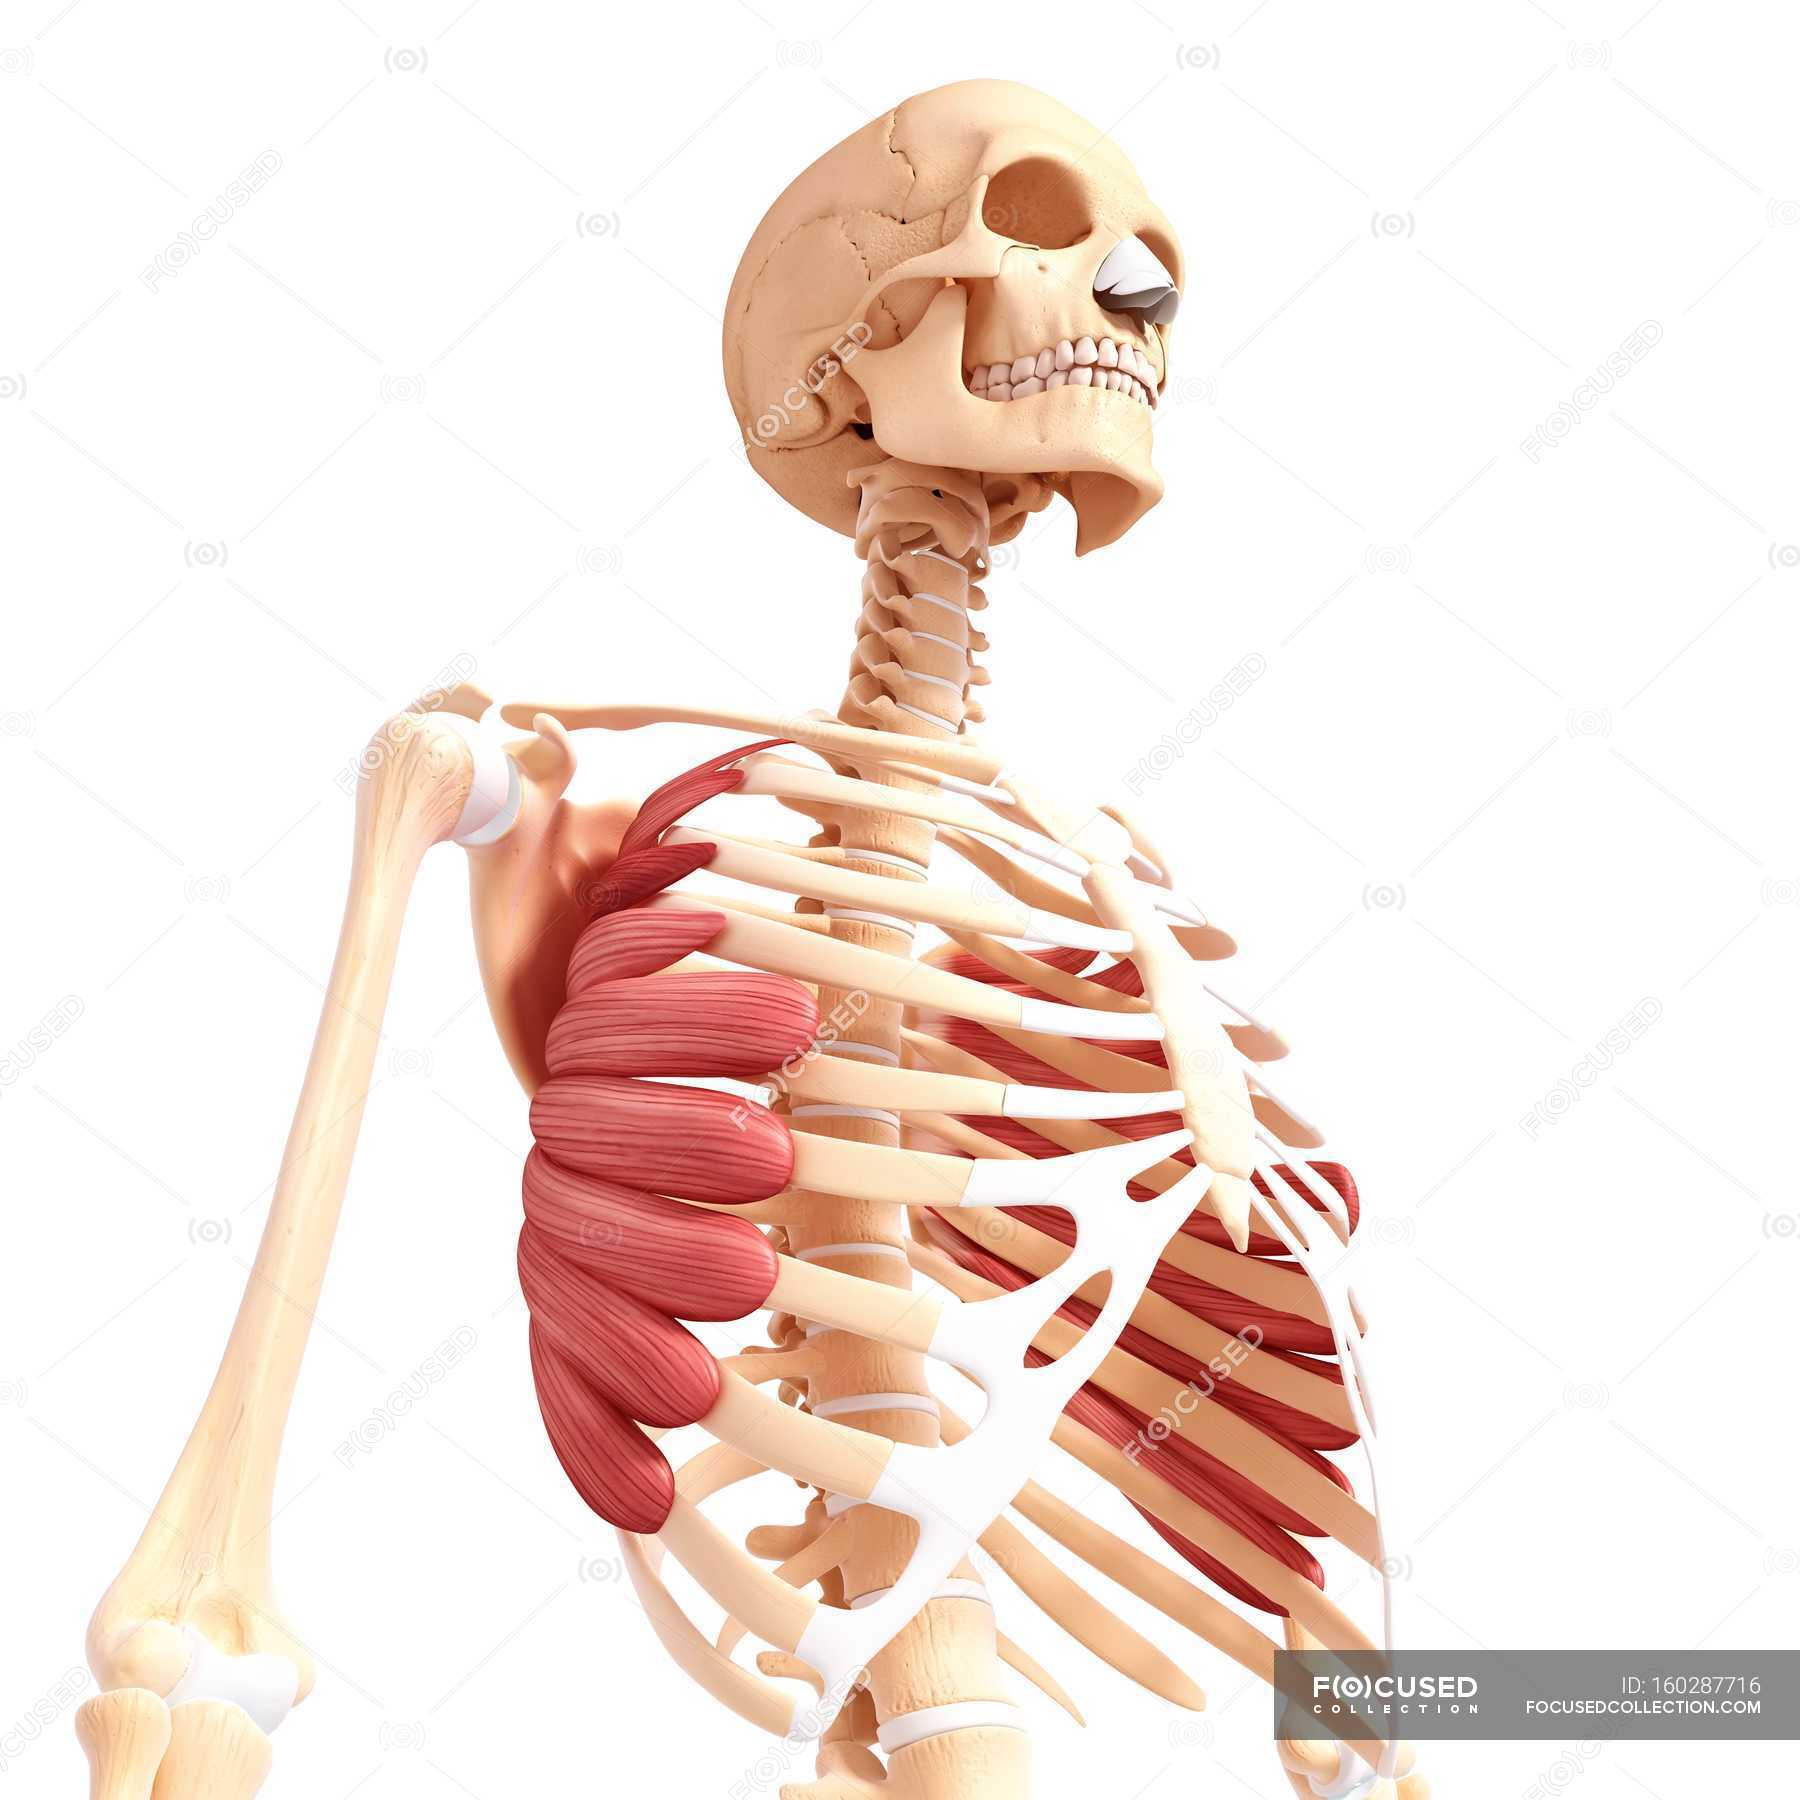 Serratus anterior musculature — Stock Photo | #160287716